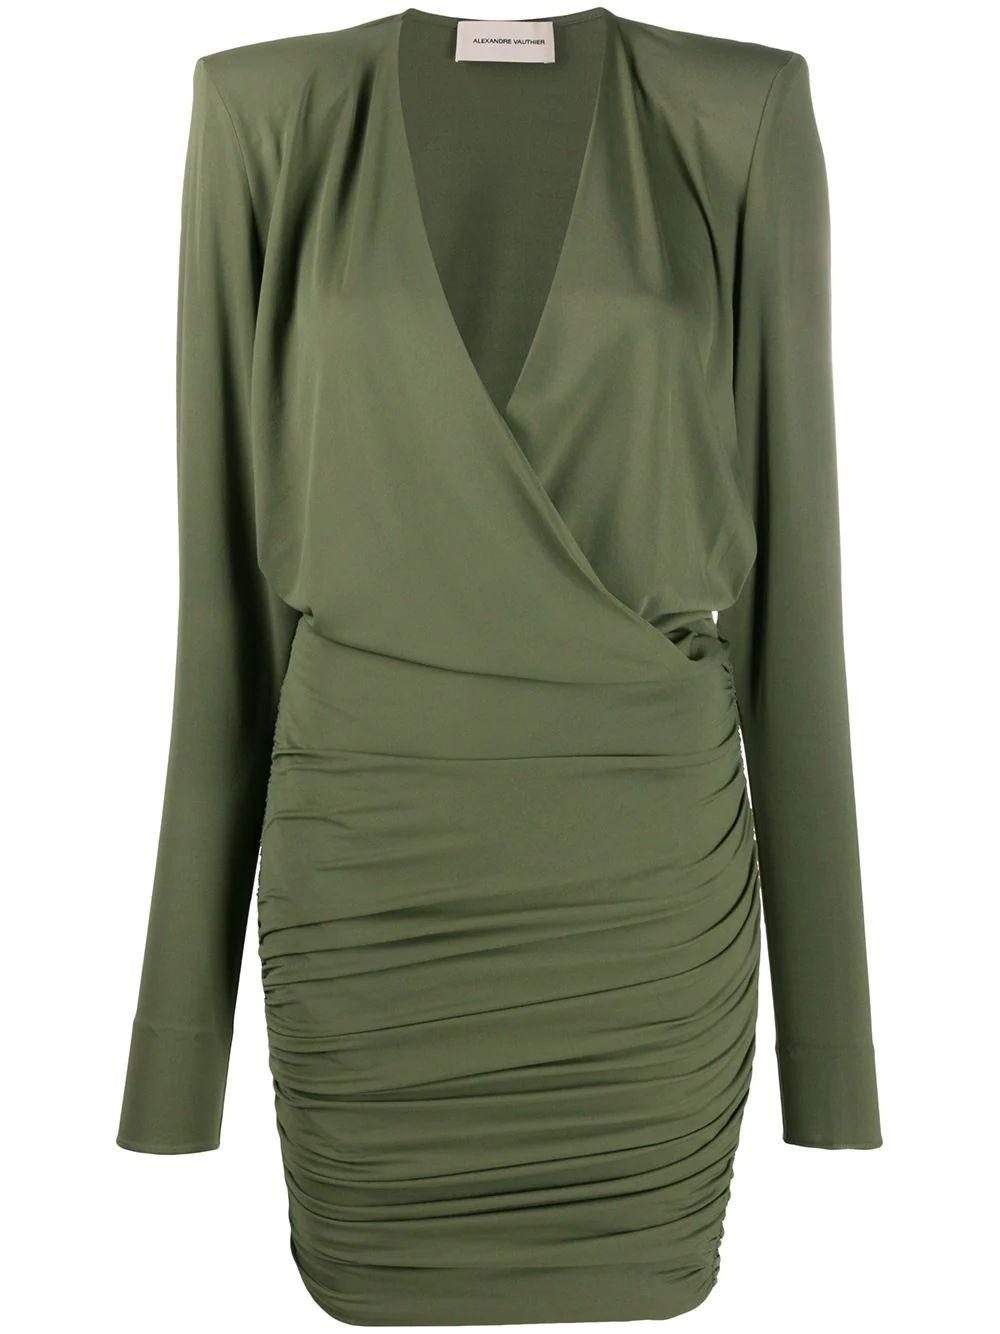 Wrap Top Jersey Dress